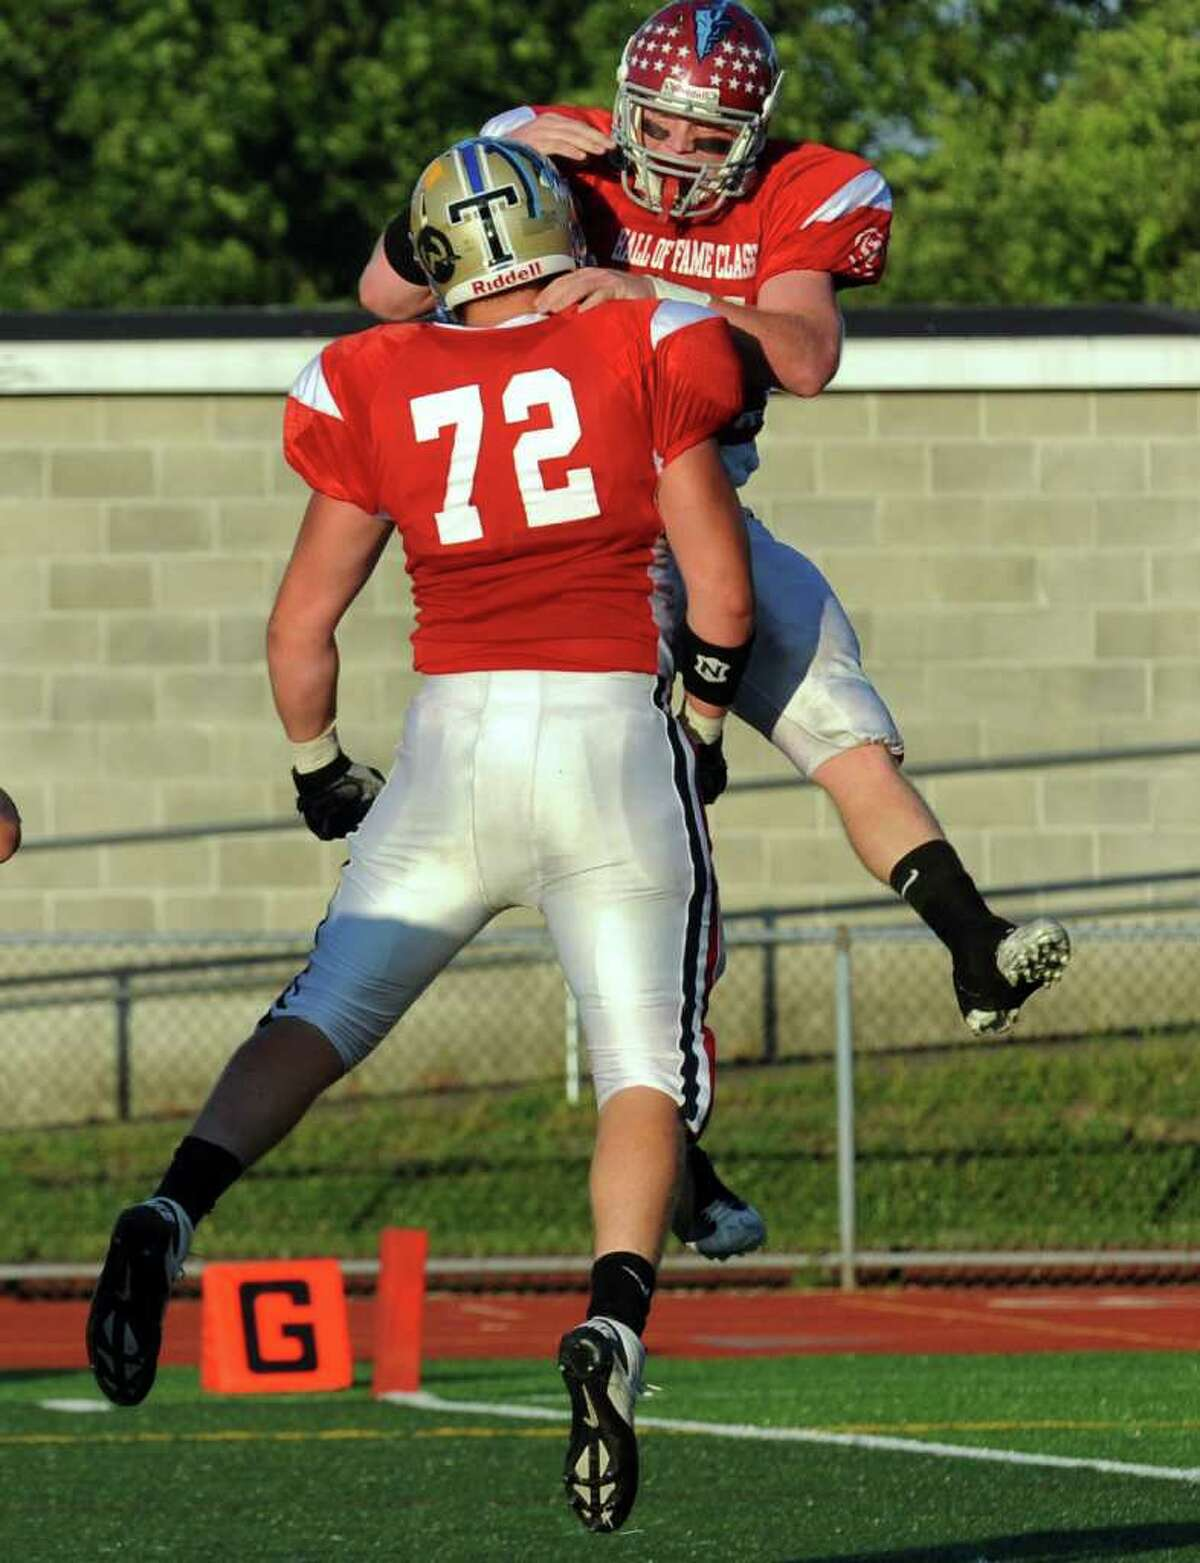 St. Joseph's #44 Tyler Matakevich, right, leaps in the air to celebrate his touchdown with teammate #72 Matt Datin, during Fairfield County vs. New Haven County All-star football action in West Haven, Conn. on Saturday July 9, 2011.